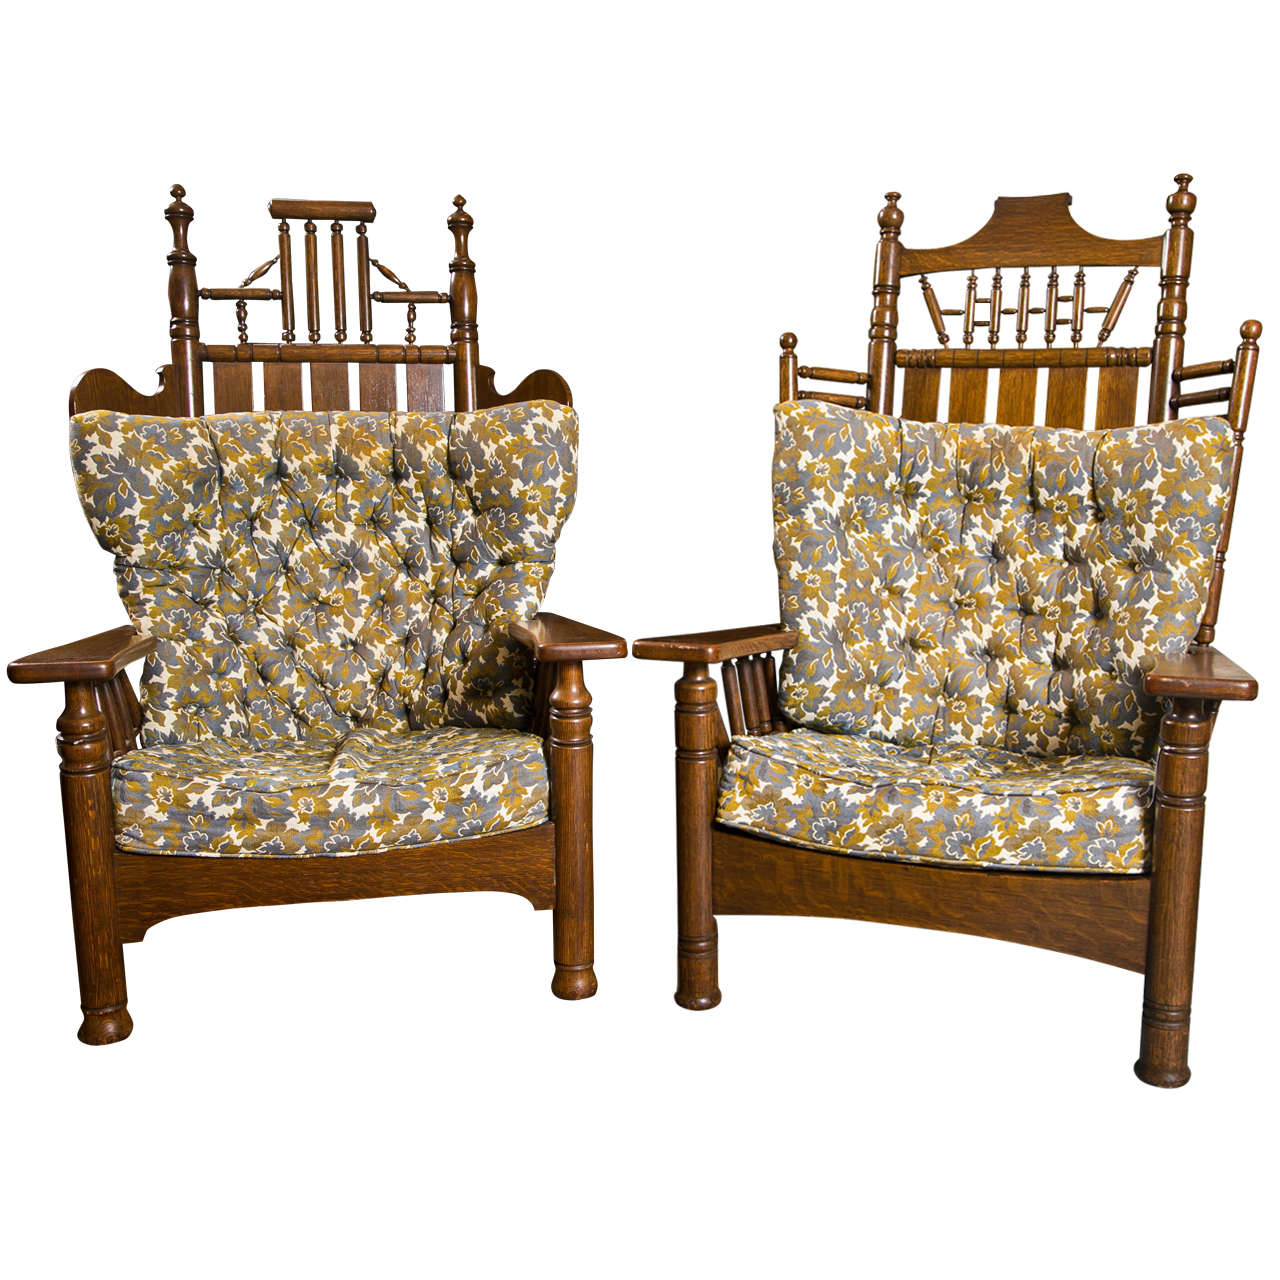 Antique Oak Pair of King and Queen Chairs 1 - Antique Oak Pair Of King And Queen Chairs For Sale At 1stdibs